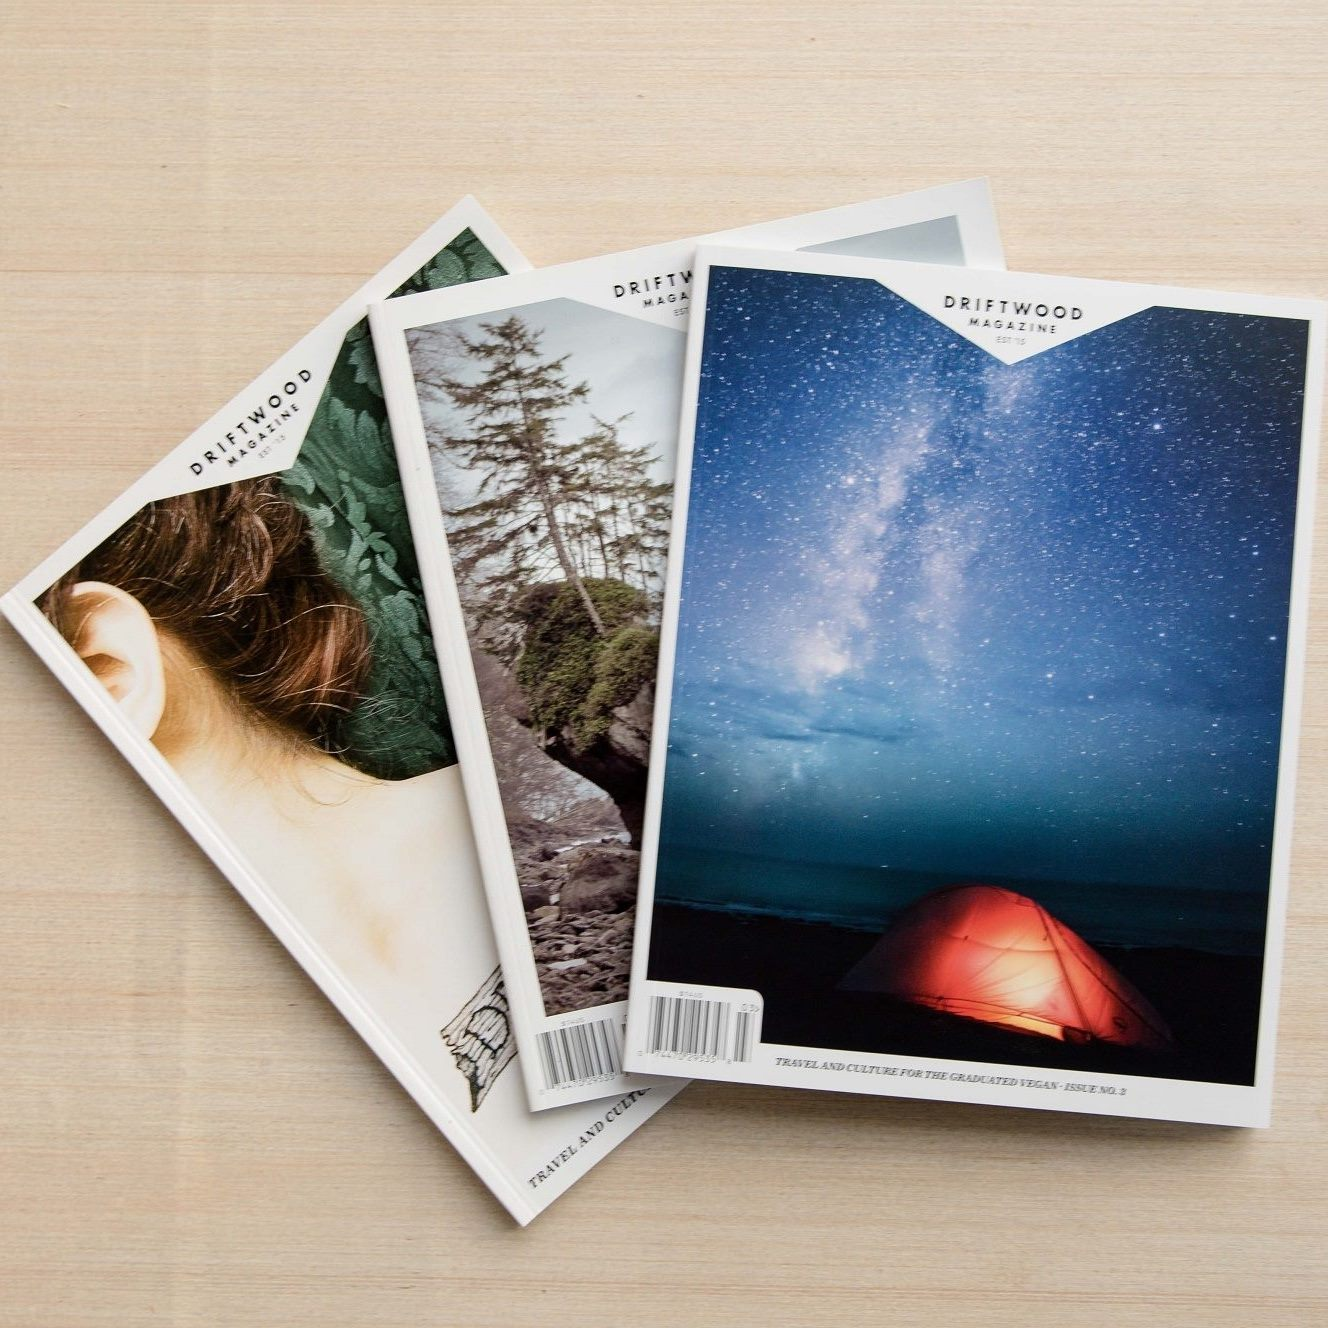 DRIFTWOOD MAGAZINE - Driftwood is a celebration of what is possible in a vegan world, showcasing travel and culture for the graduated vegan. Each issue brings you stories of vegan travel adventures, profiles on people, and advancements in the global vegan community.Subscribe to Driftwood here.